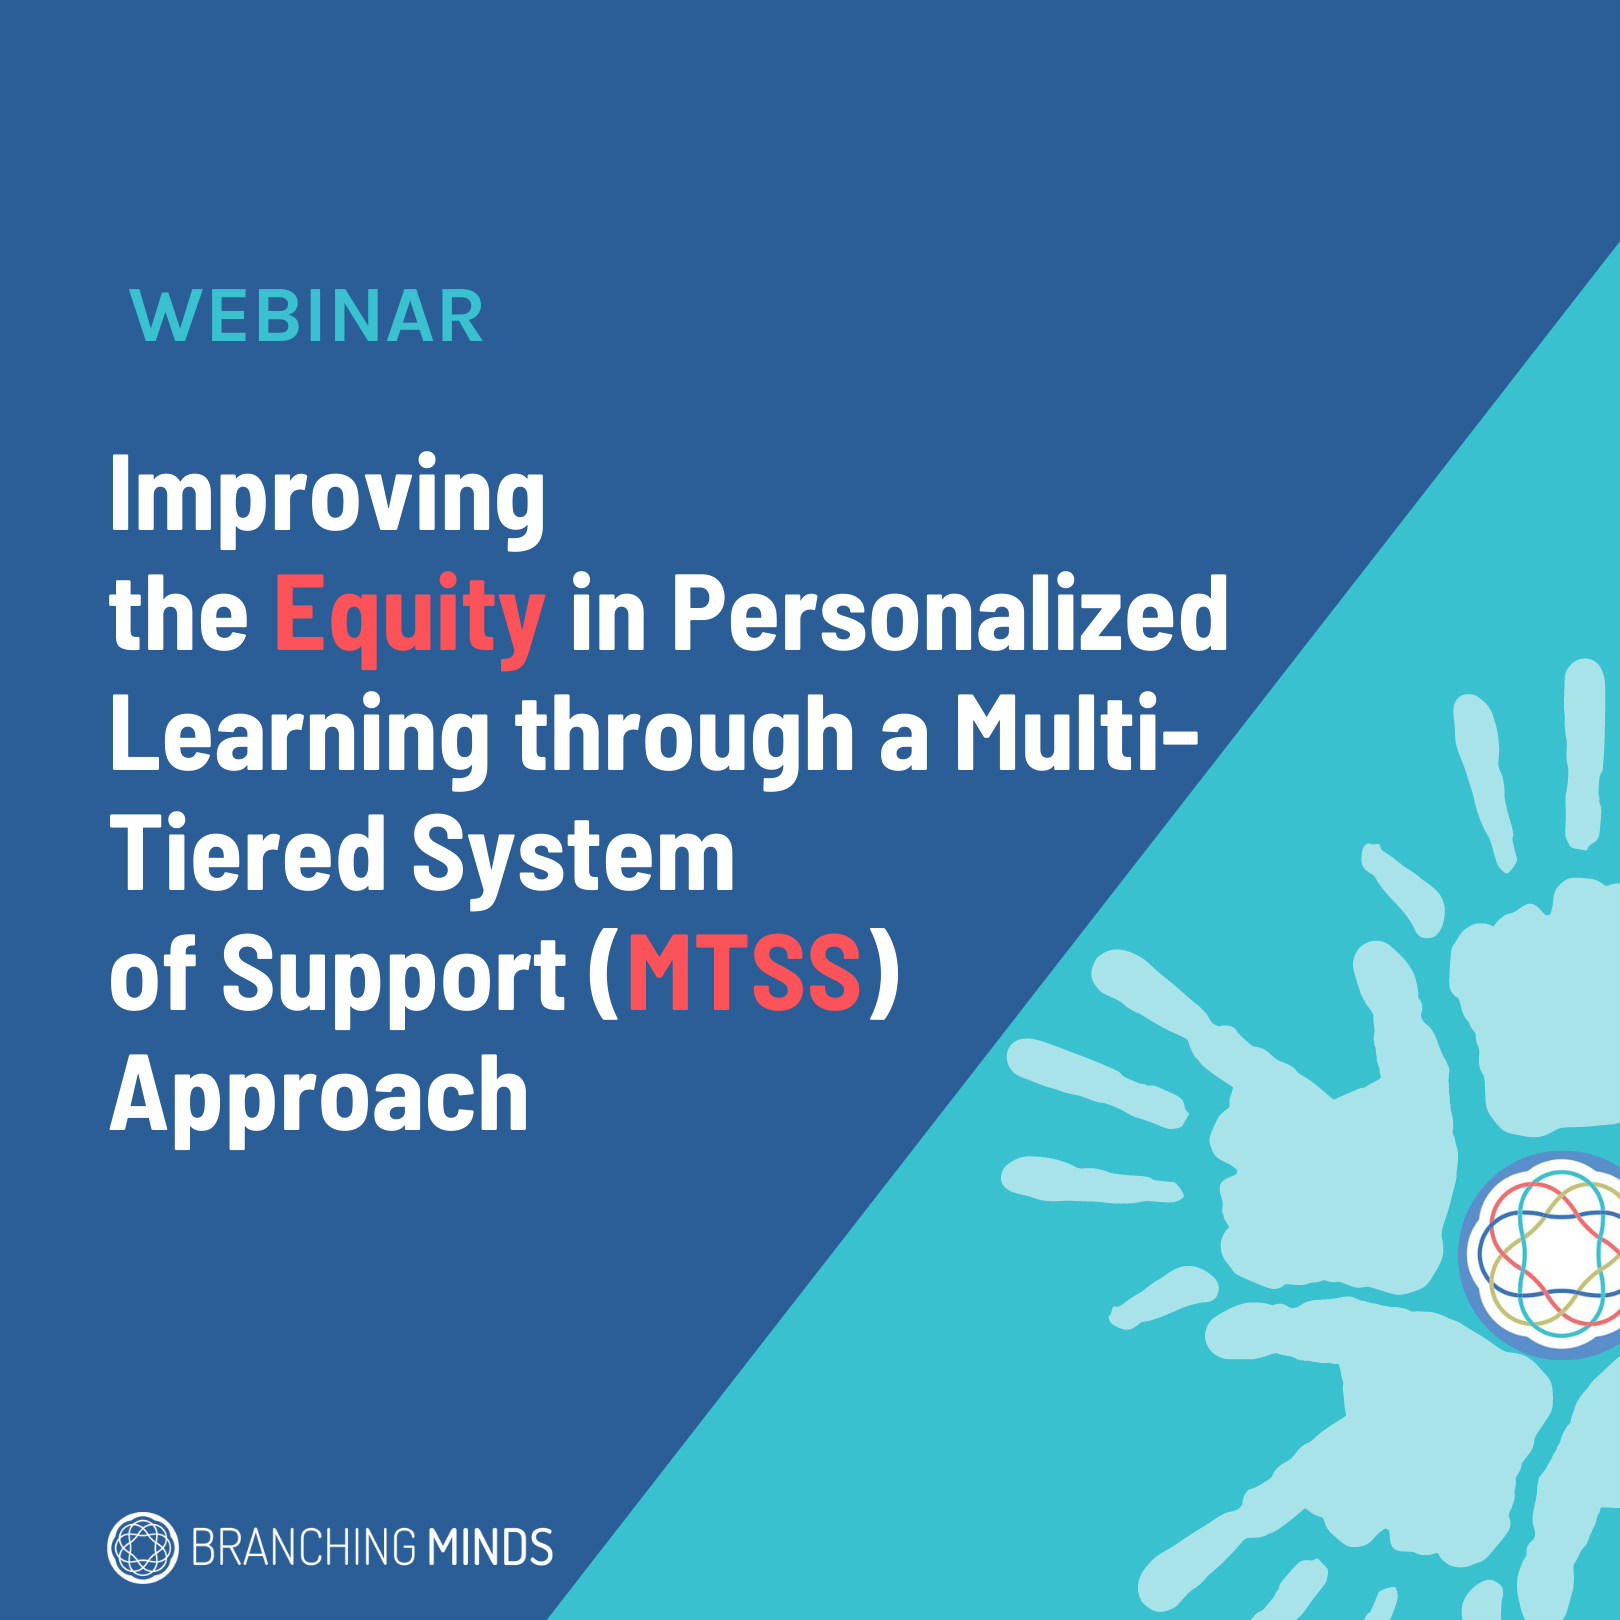 Webinar - Improving the Equity in Personalized Learning through a Multi-Tiered System of Support (MTSS) Approach